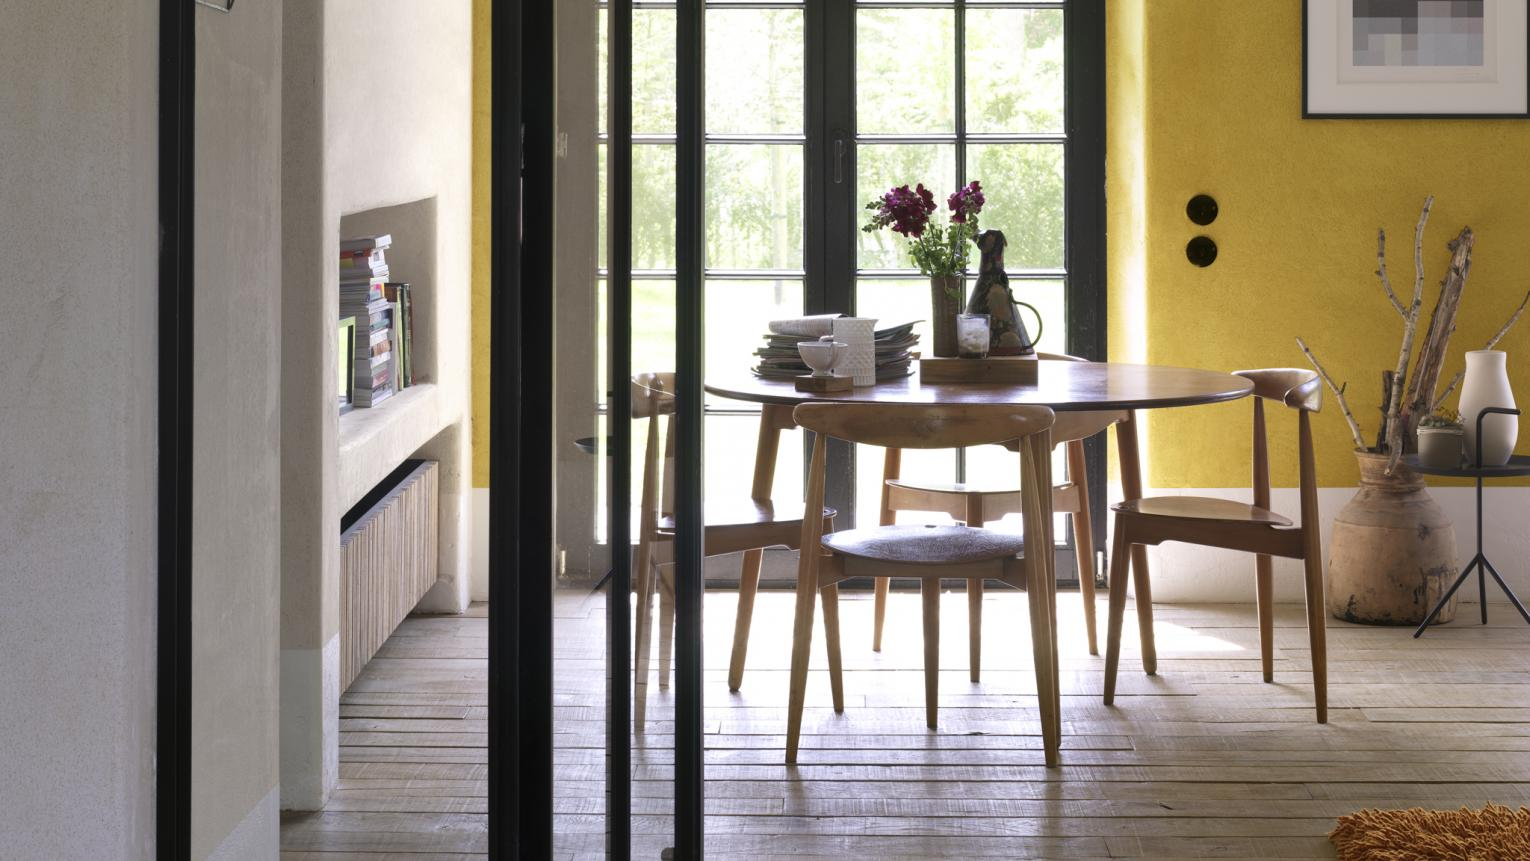 For a dining space that's full of cheer, look to warm yellow colour schemes.